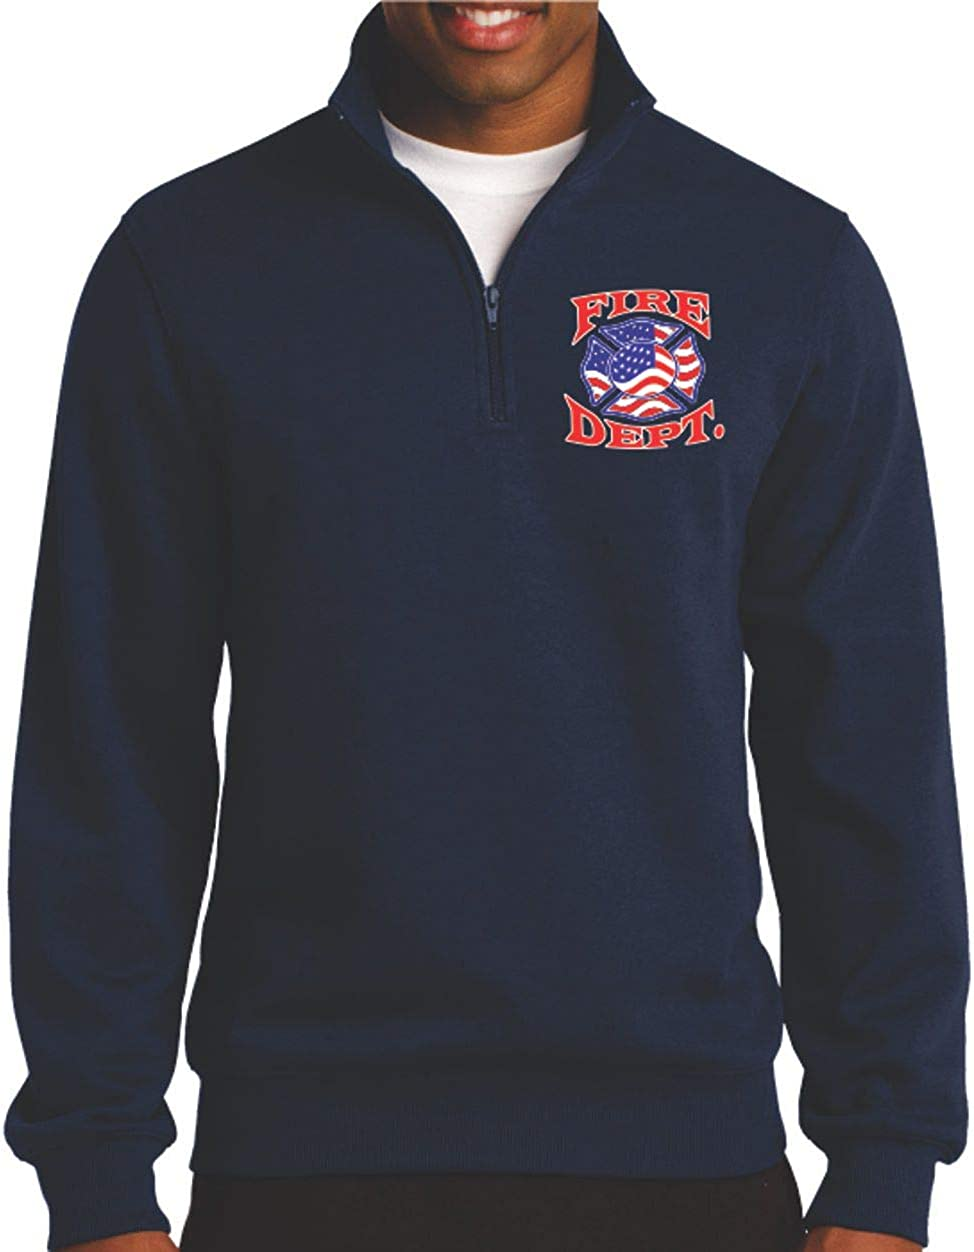 Sport-tek 1//4 Zip Premium Fleece W//firefighter Print